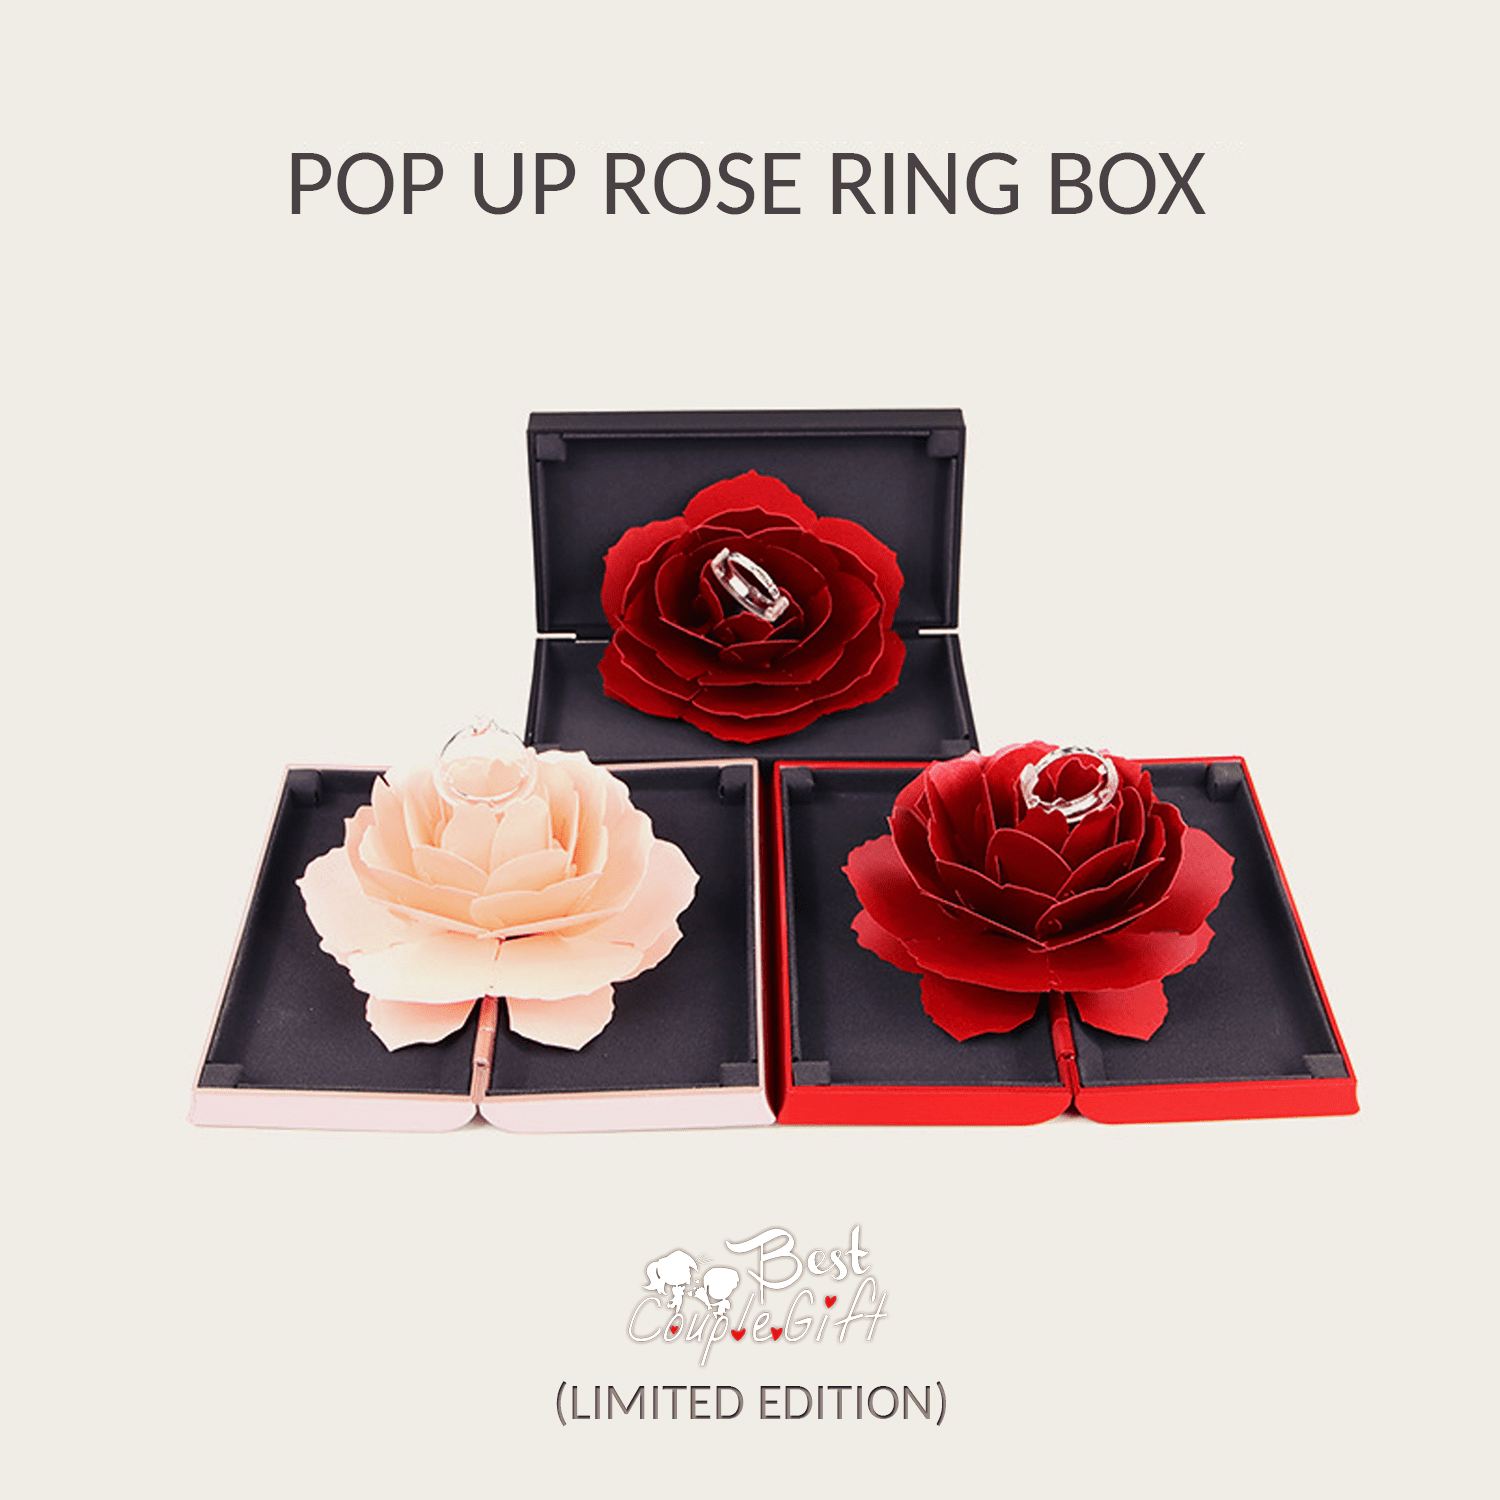 Pop Up Rose Ring Box (Limited Edition)